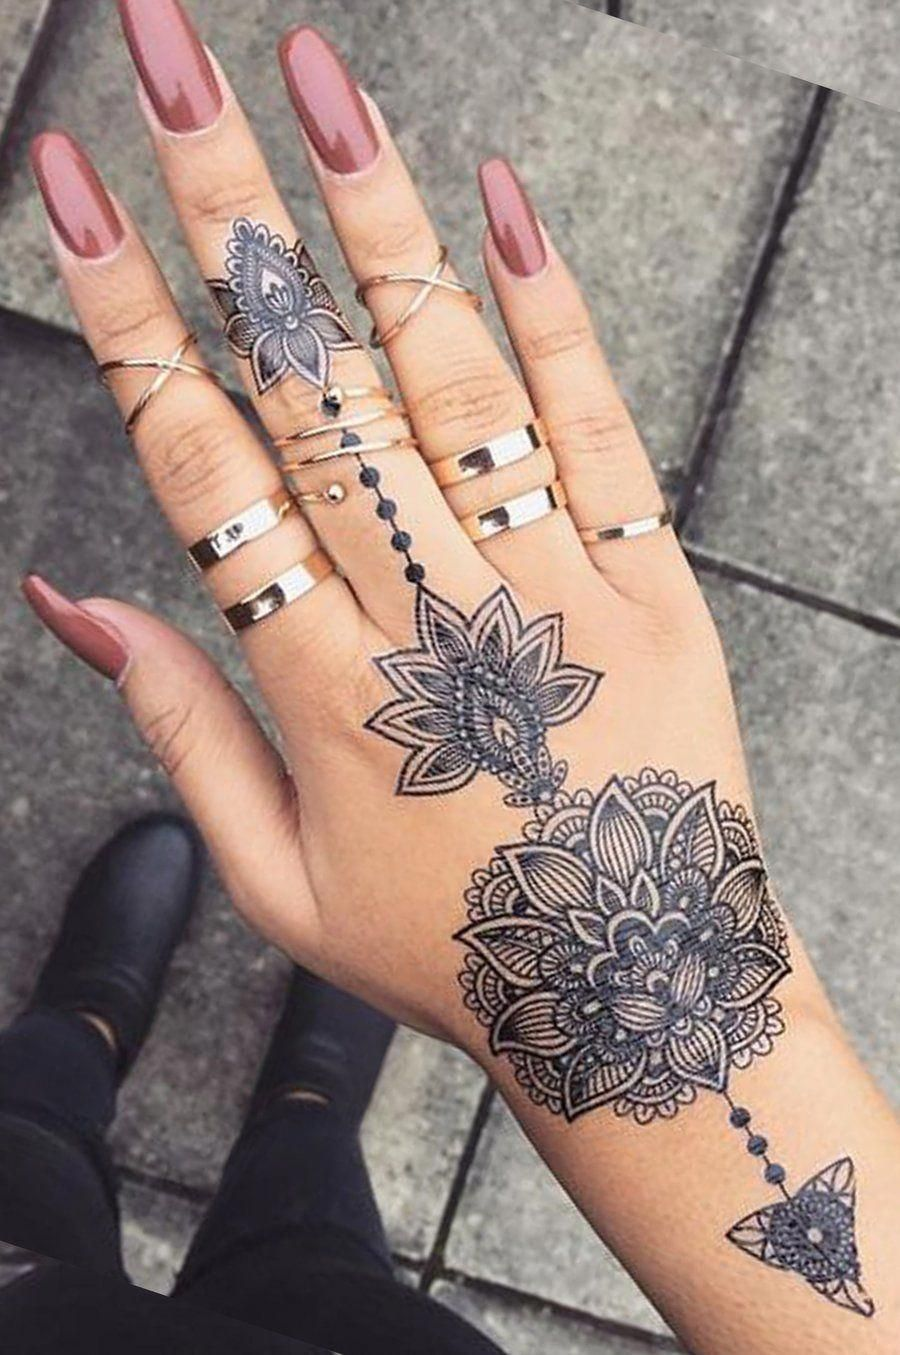 Samoan Tattoos Auckland Samoantattoos Hand Tattoos For Women Aztec Tattoo Henna Tattoo Designs